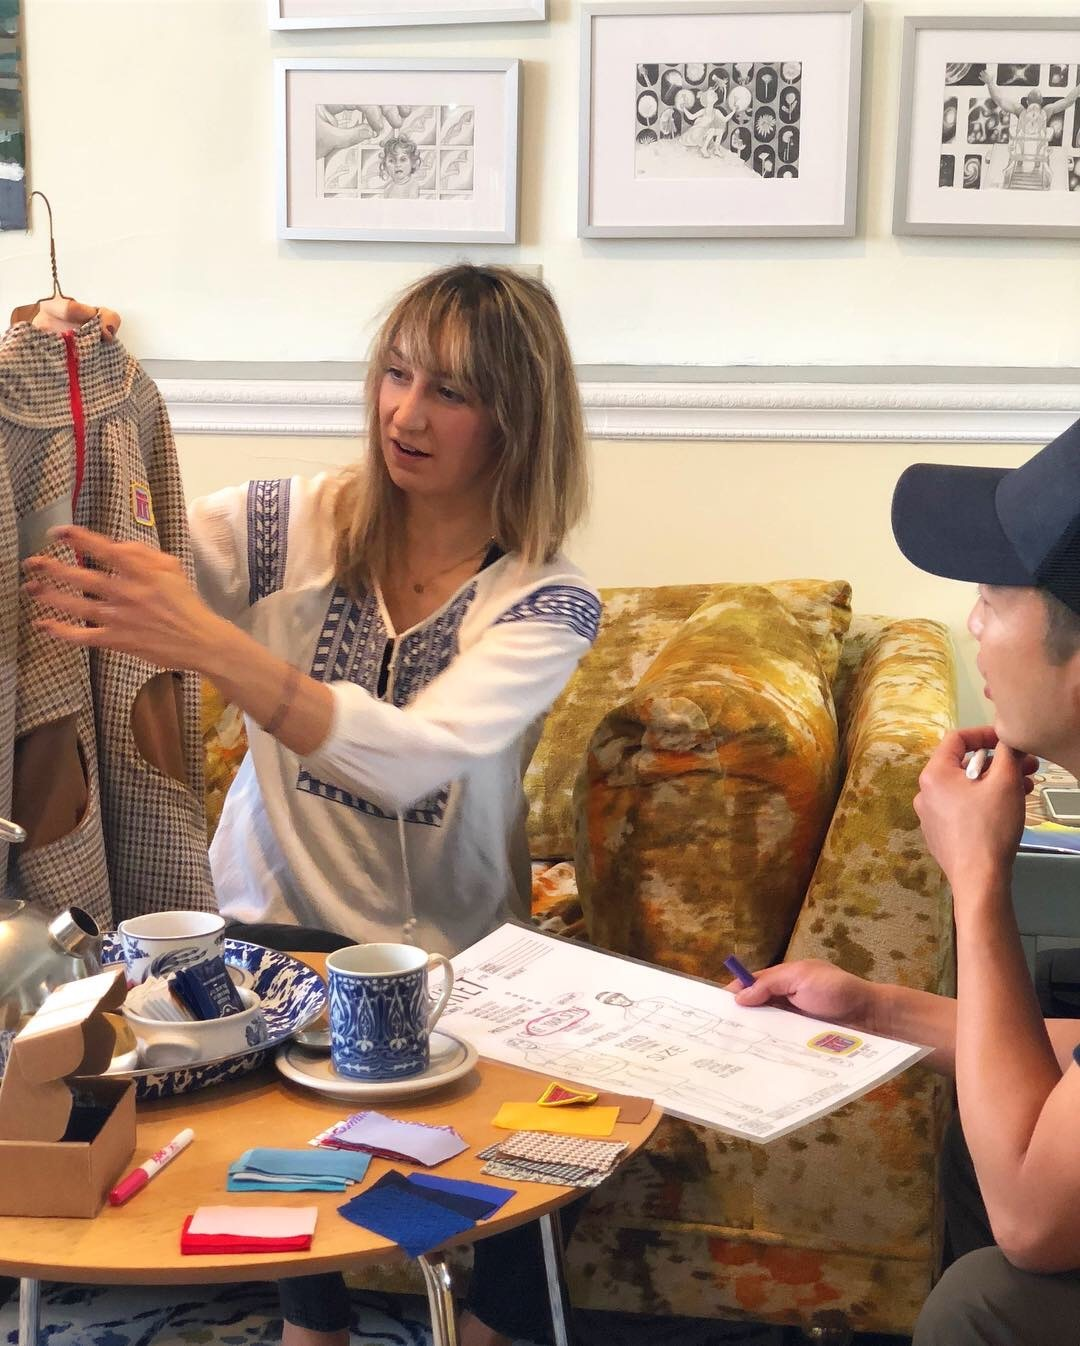 Vander Neut consults with a client to create a custom garment in her home studio